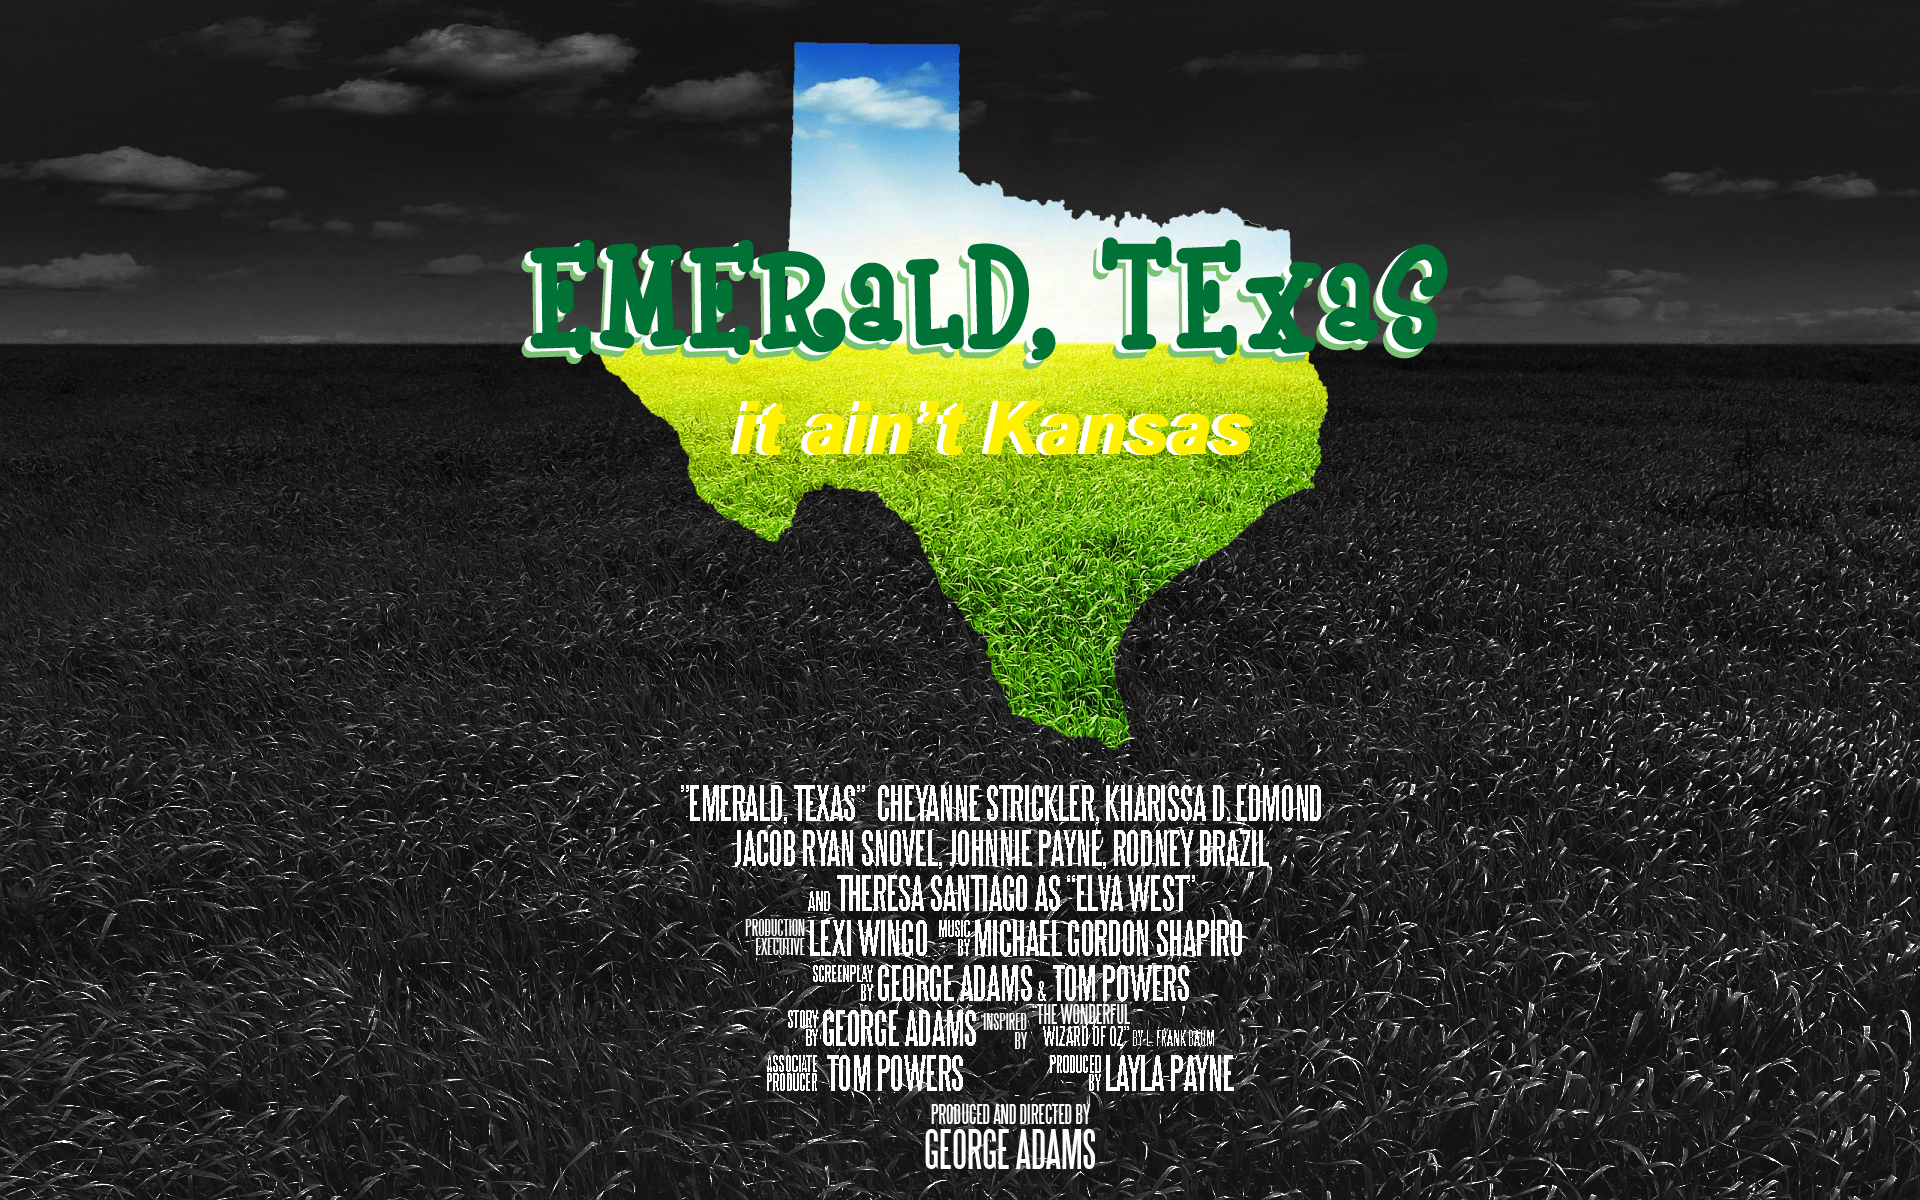 Emerald Texas, George Adams, CheyAnne Strickler